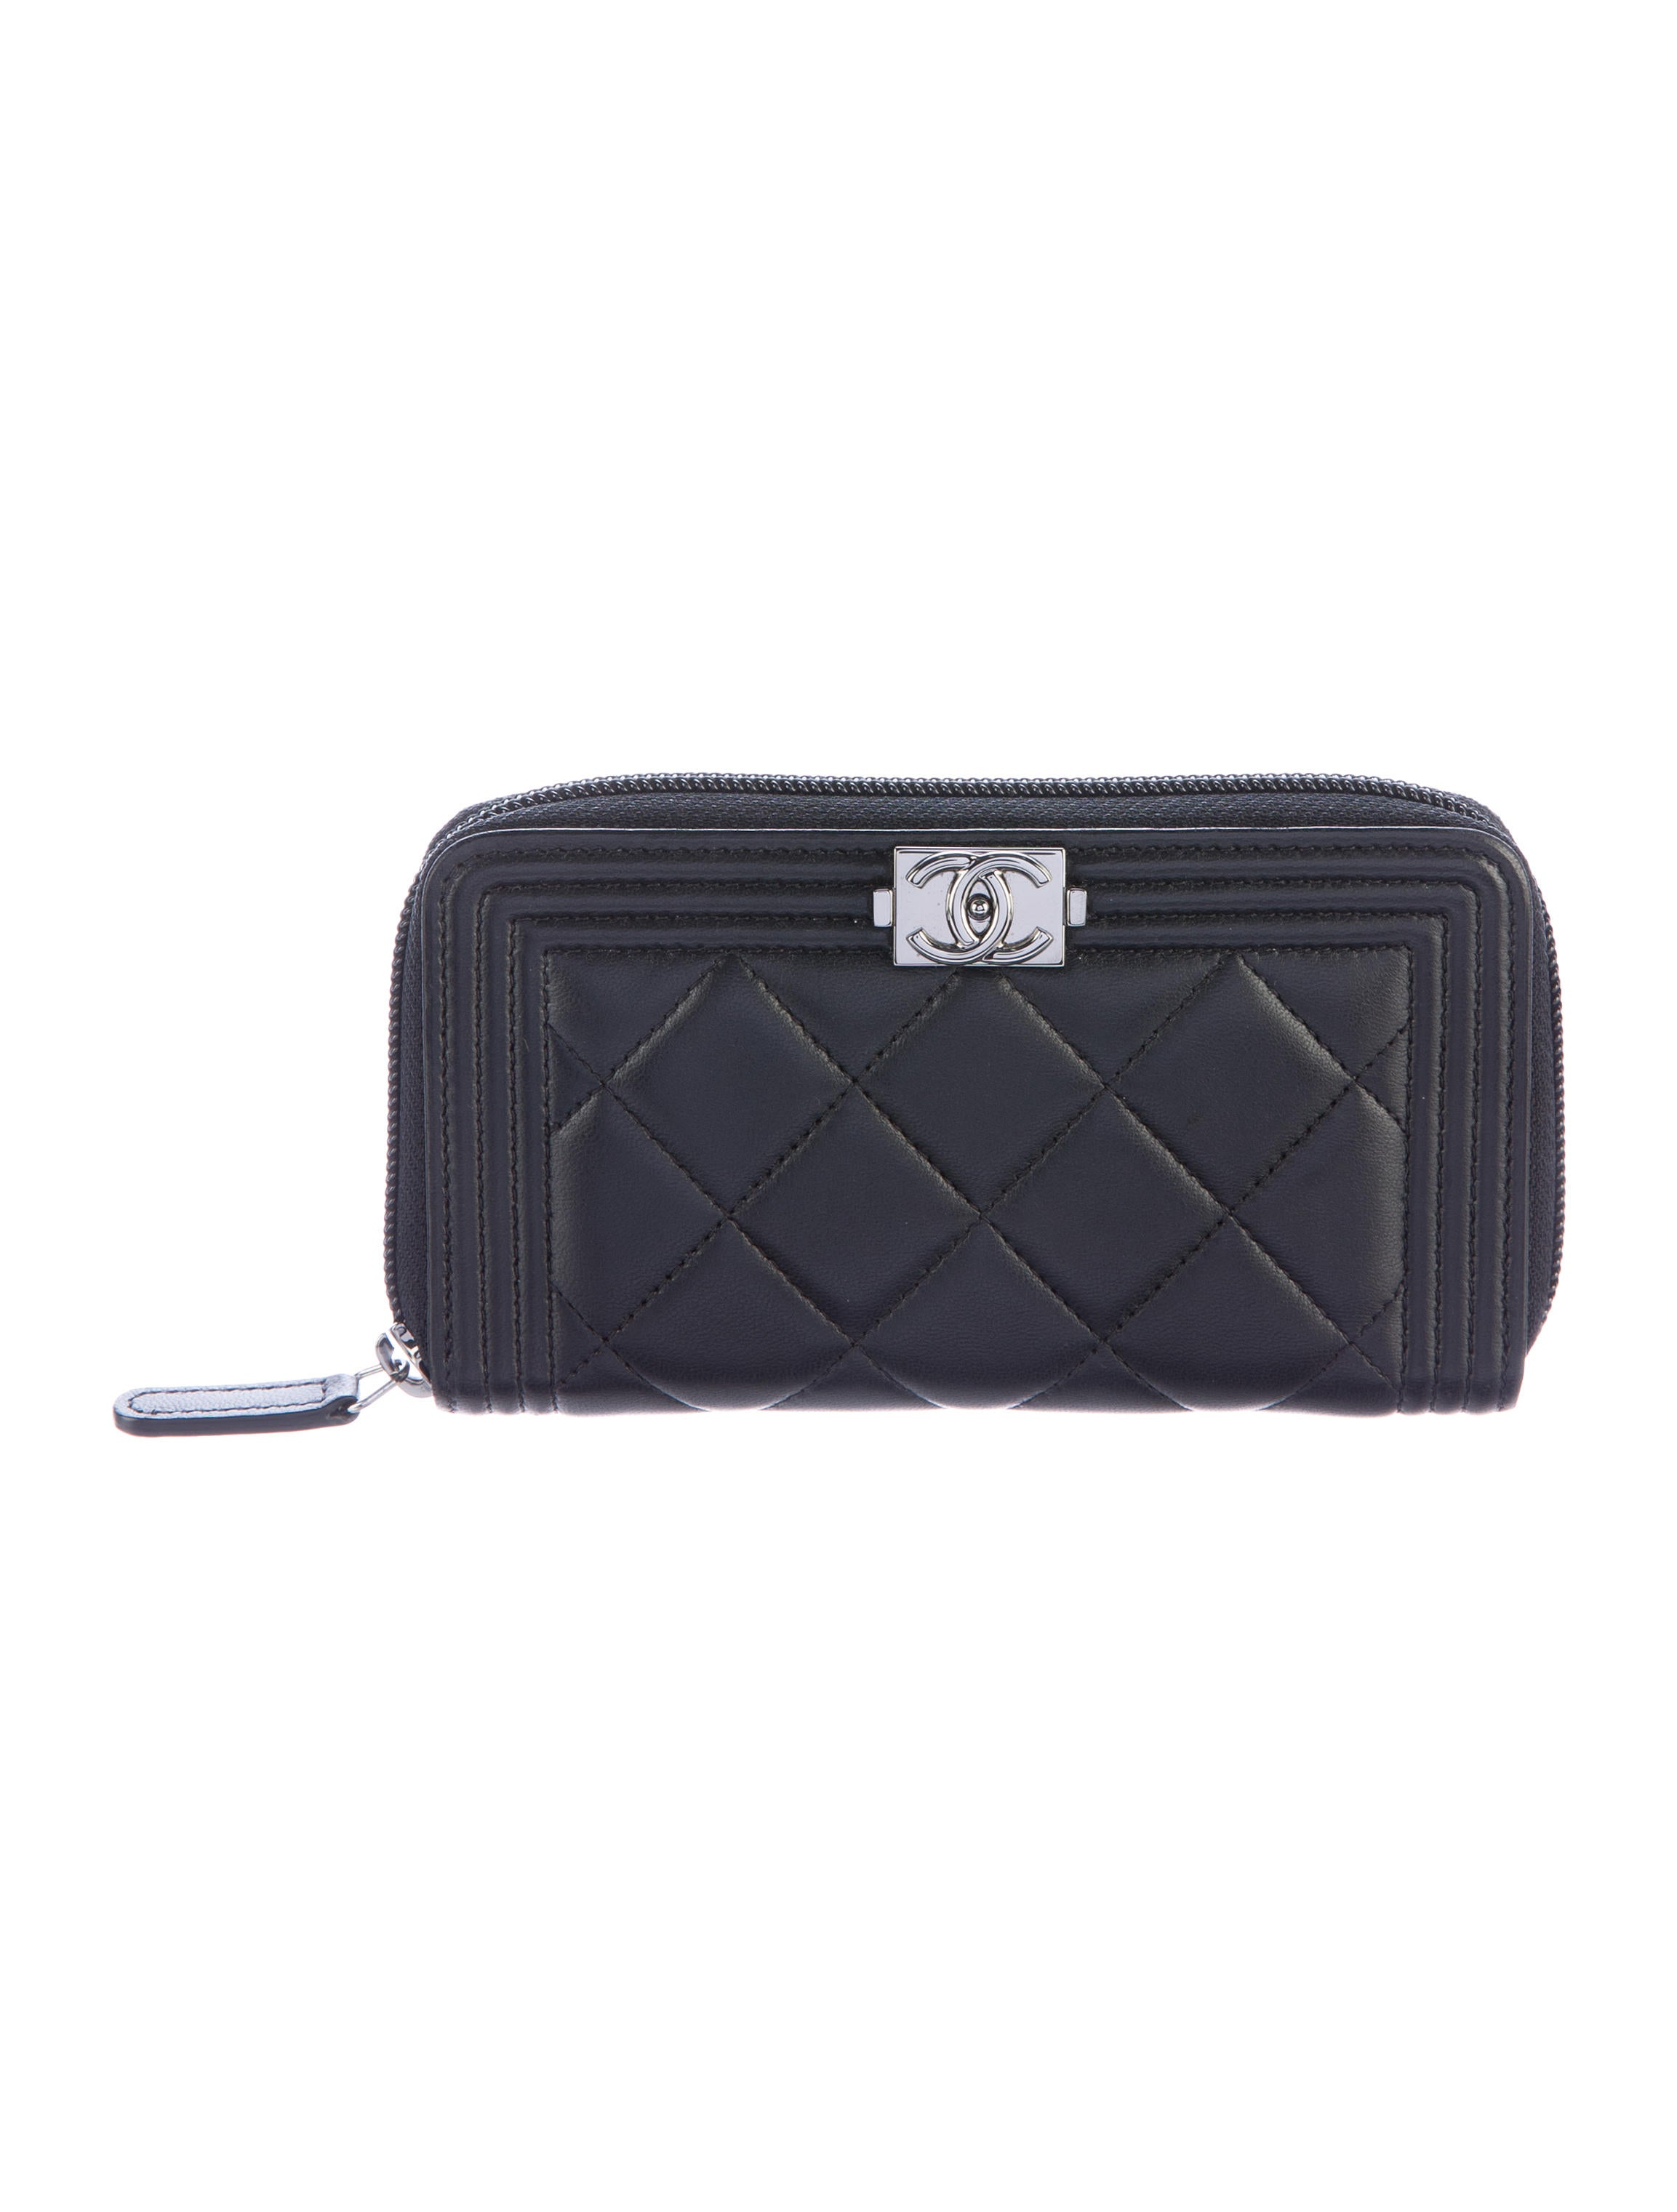 0e458d8466e6 Small Boy Chanel Wallet | Stanford Center for Opportunity Policy in ...